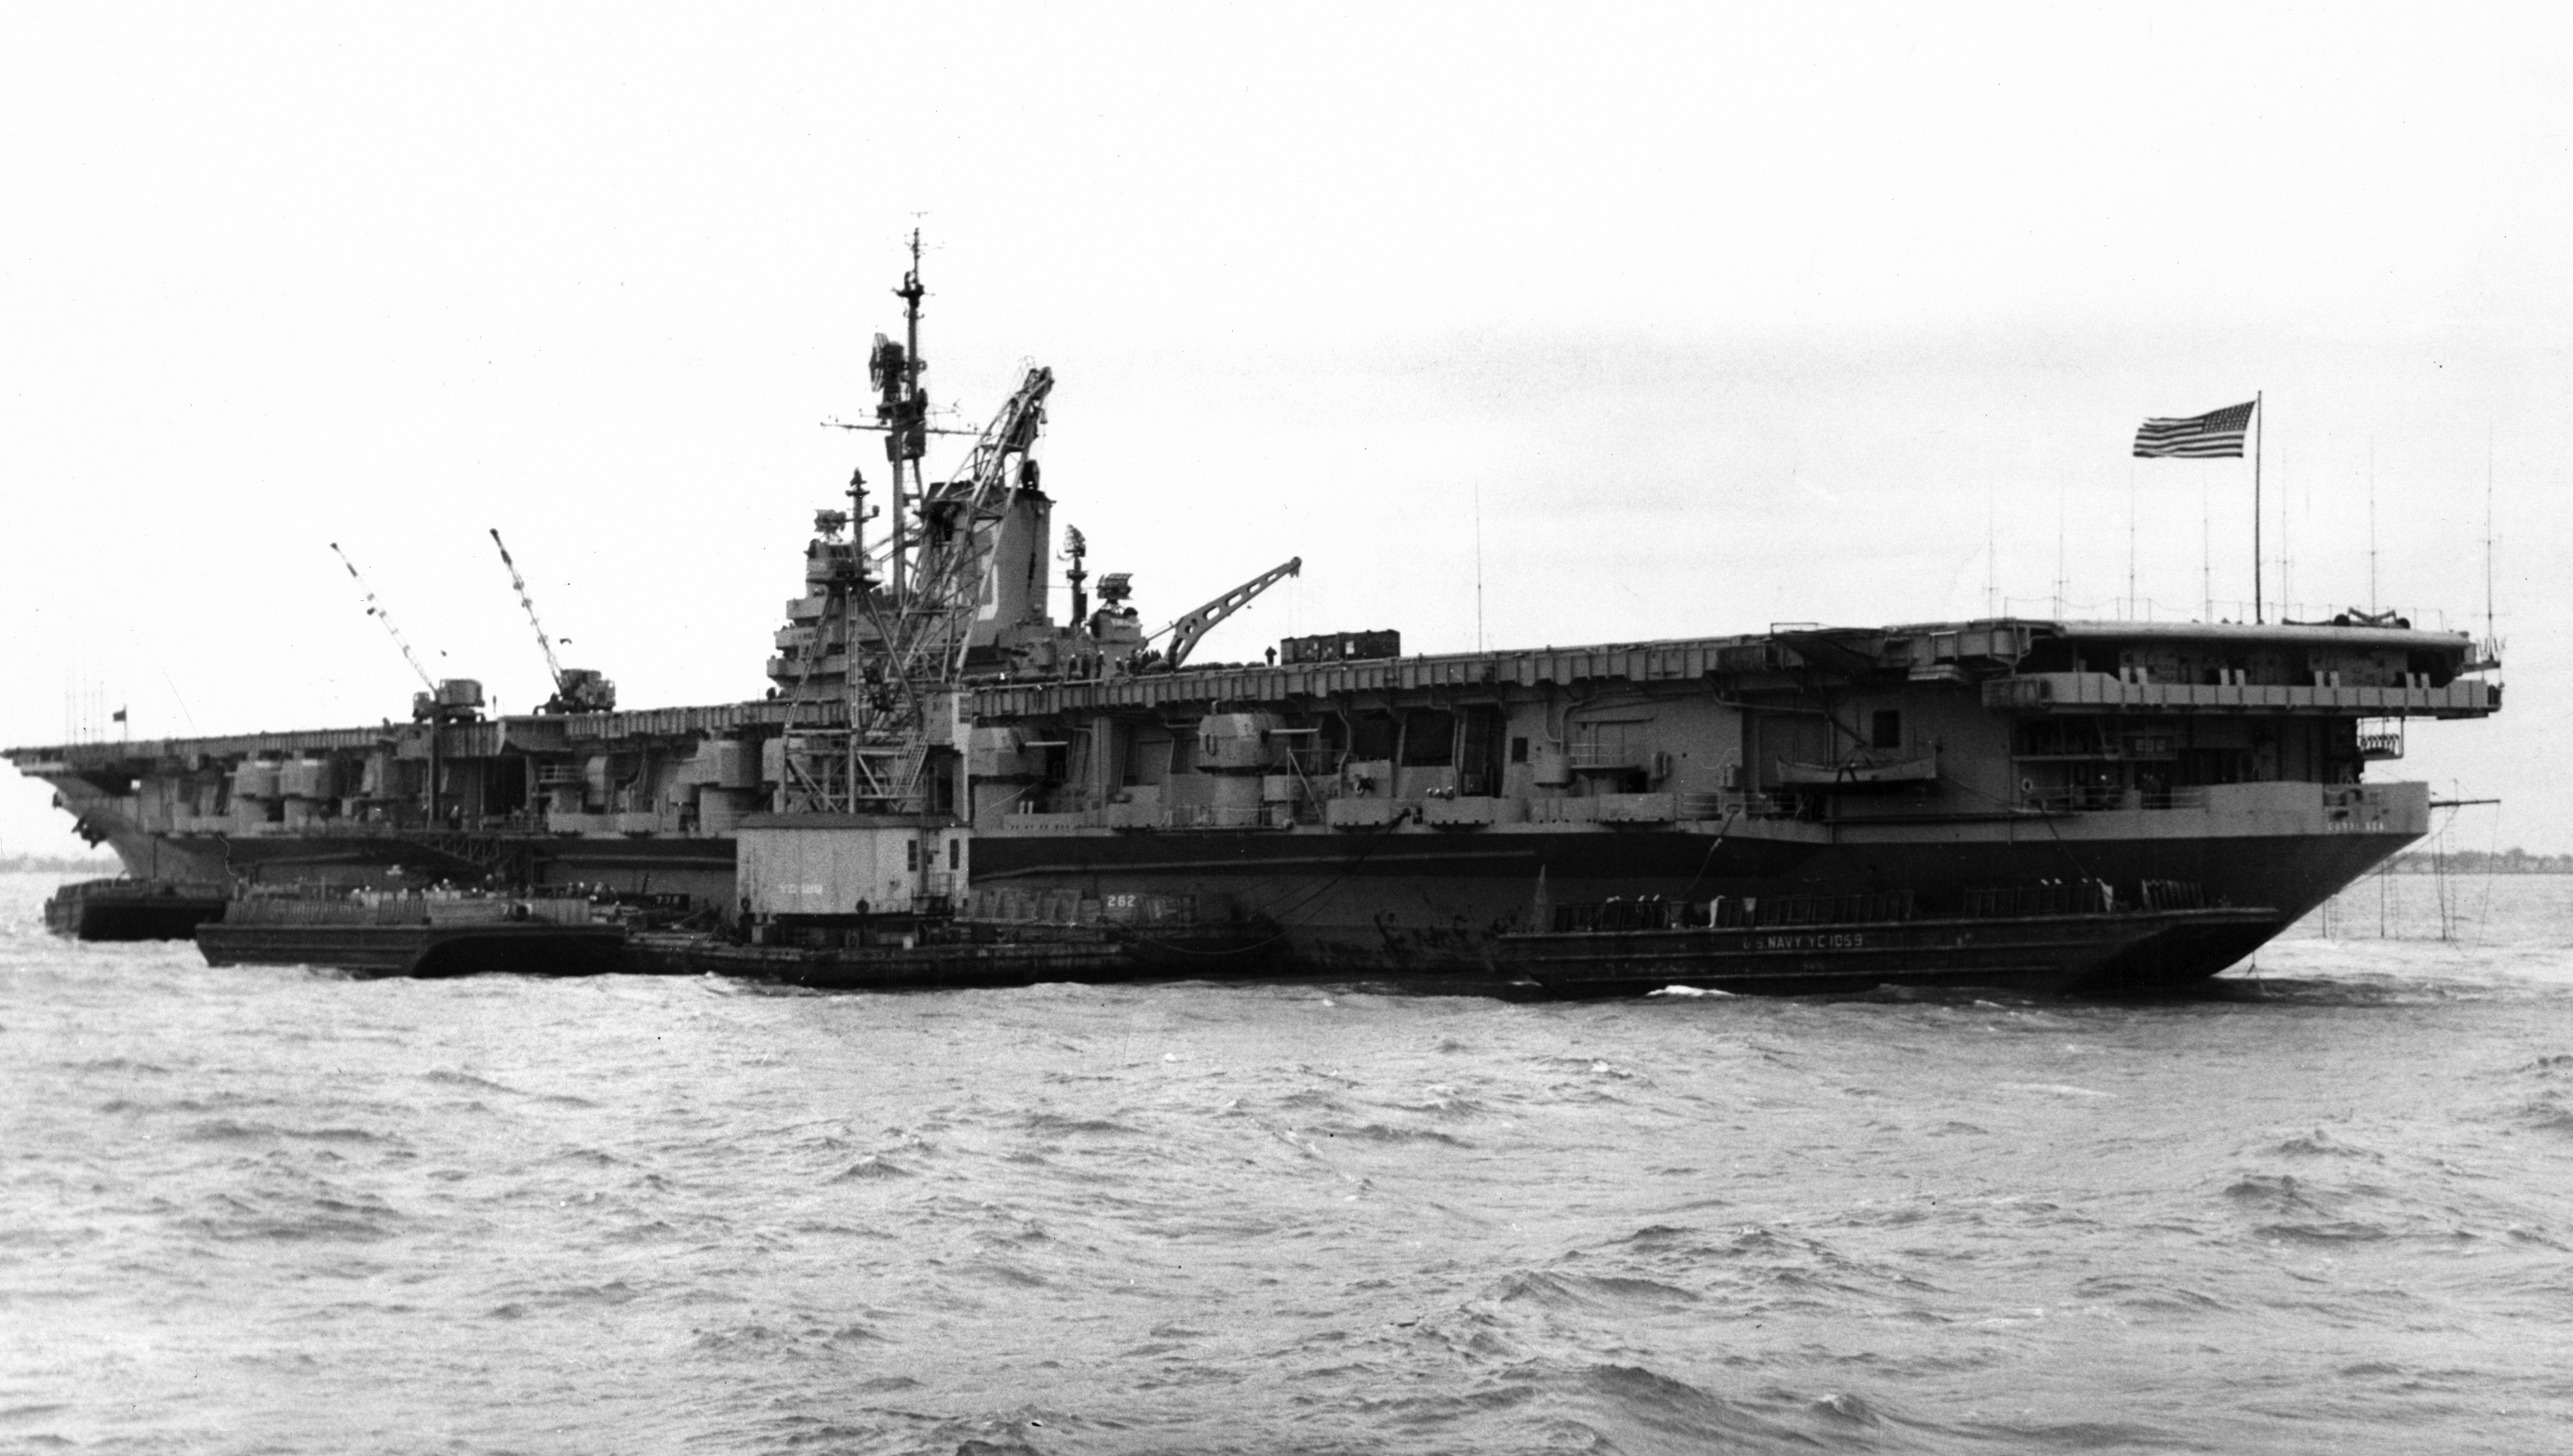 'Hi Resolution Photo Click Here' from the web at 'http://www.usscoralsea.net/images/CSEA1Oct5-1948.jpg'